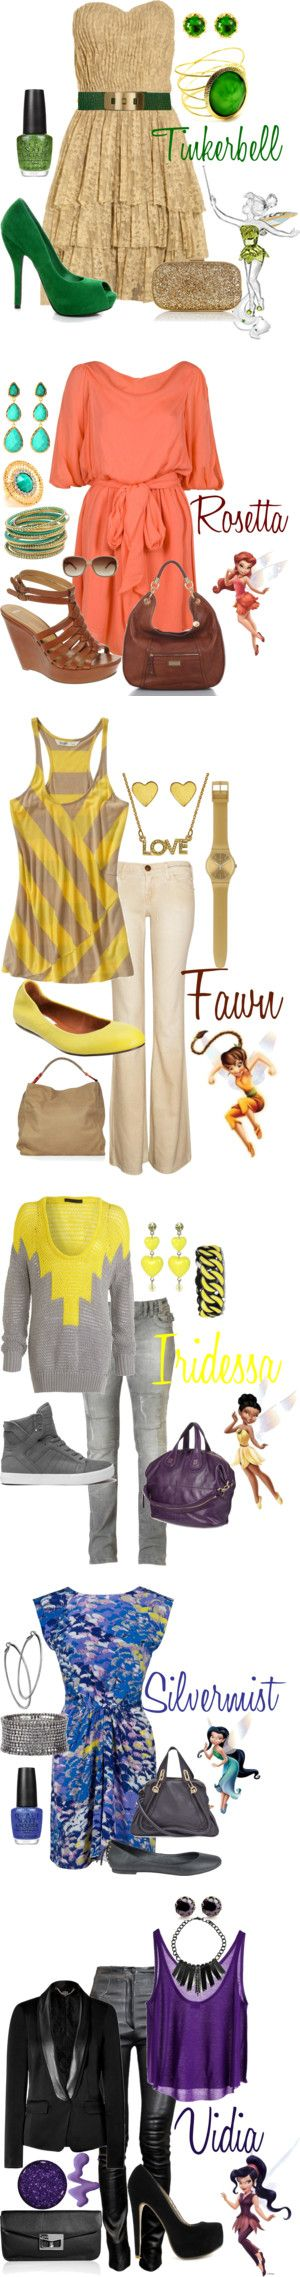 """""""Pixie Hollow"""" by emp82 on Polyvore"""